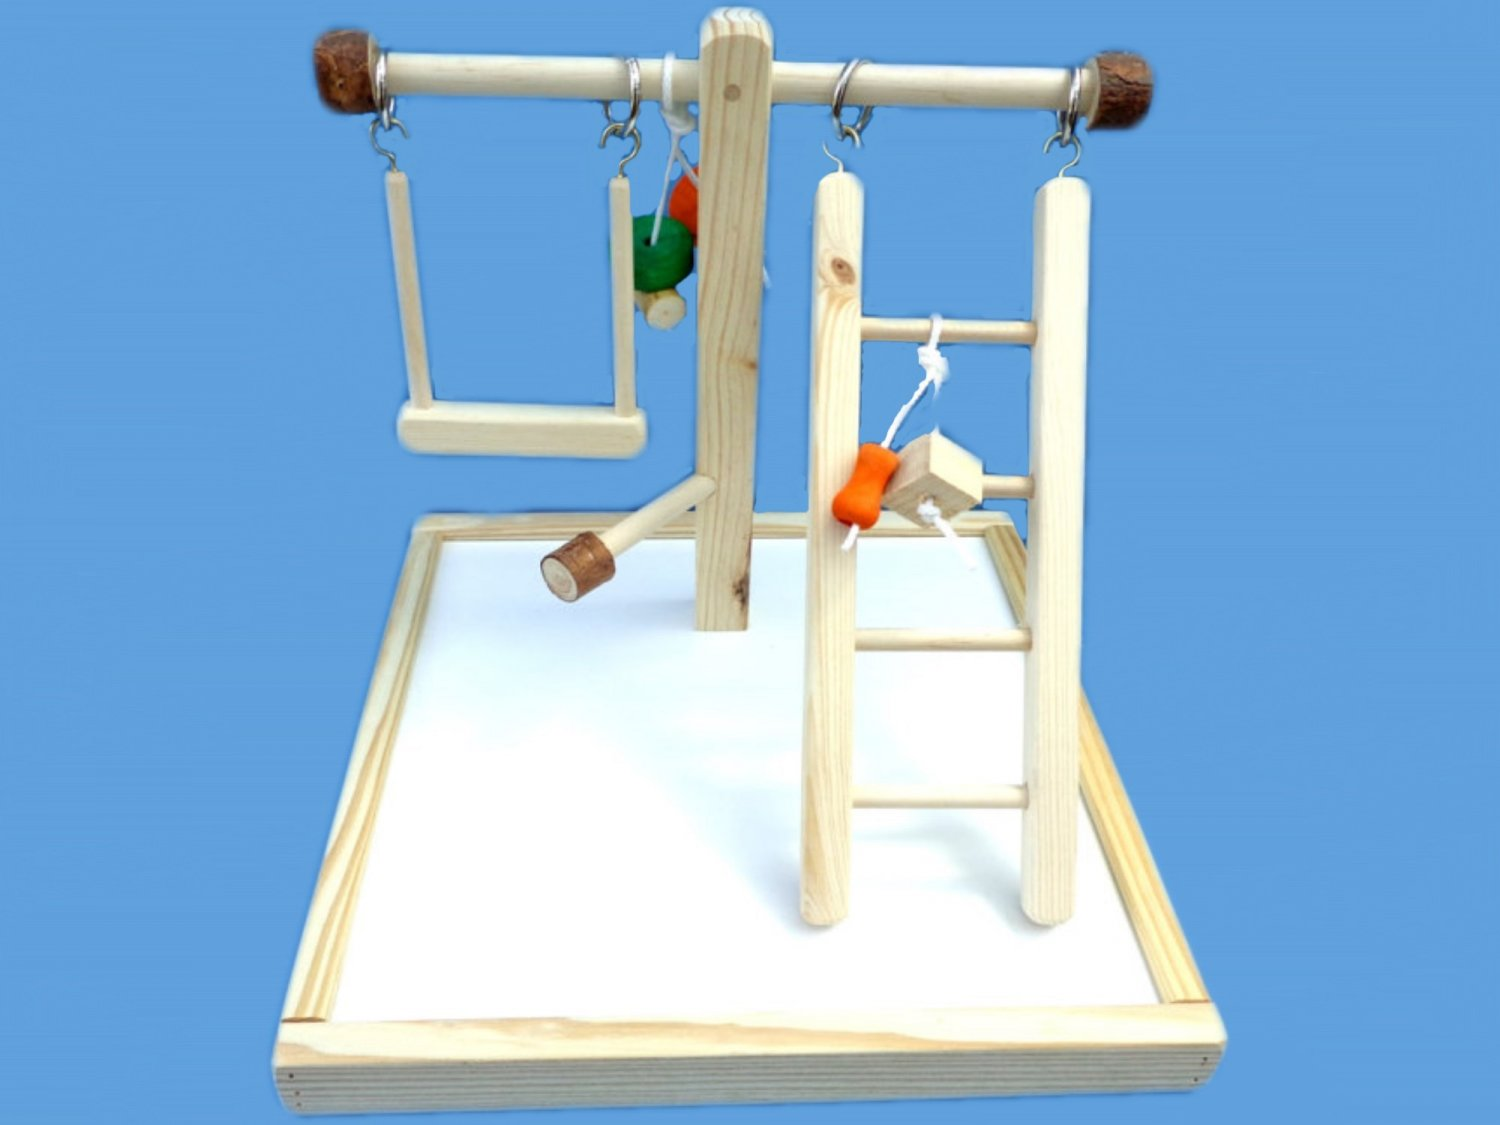 Wood dowel play gym for small birds with swing & ladder